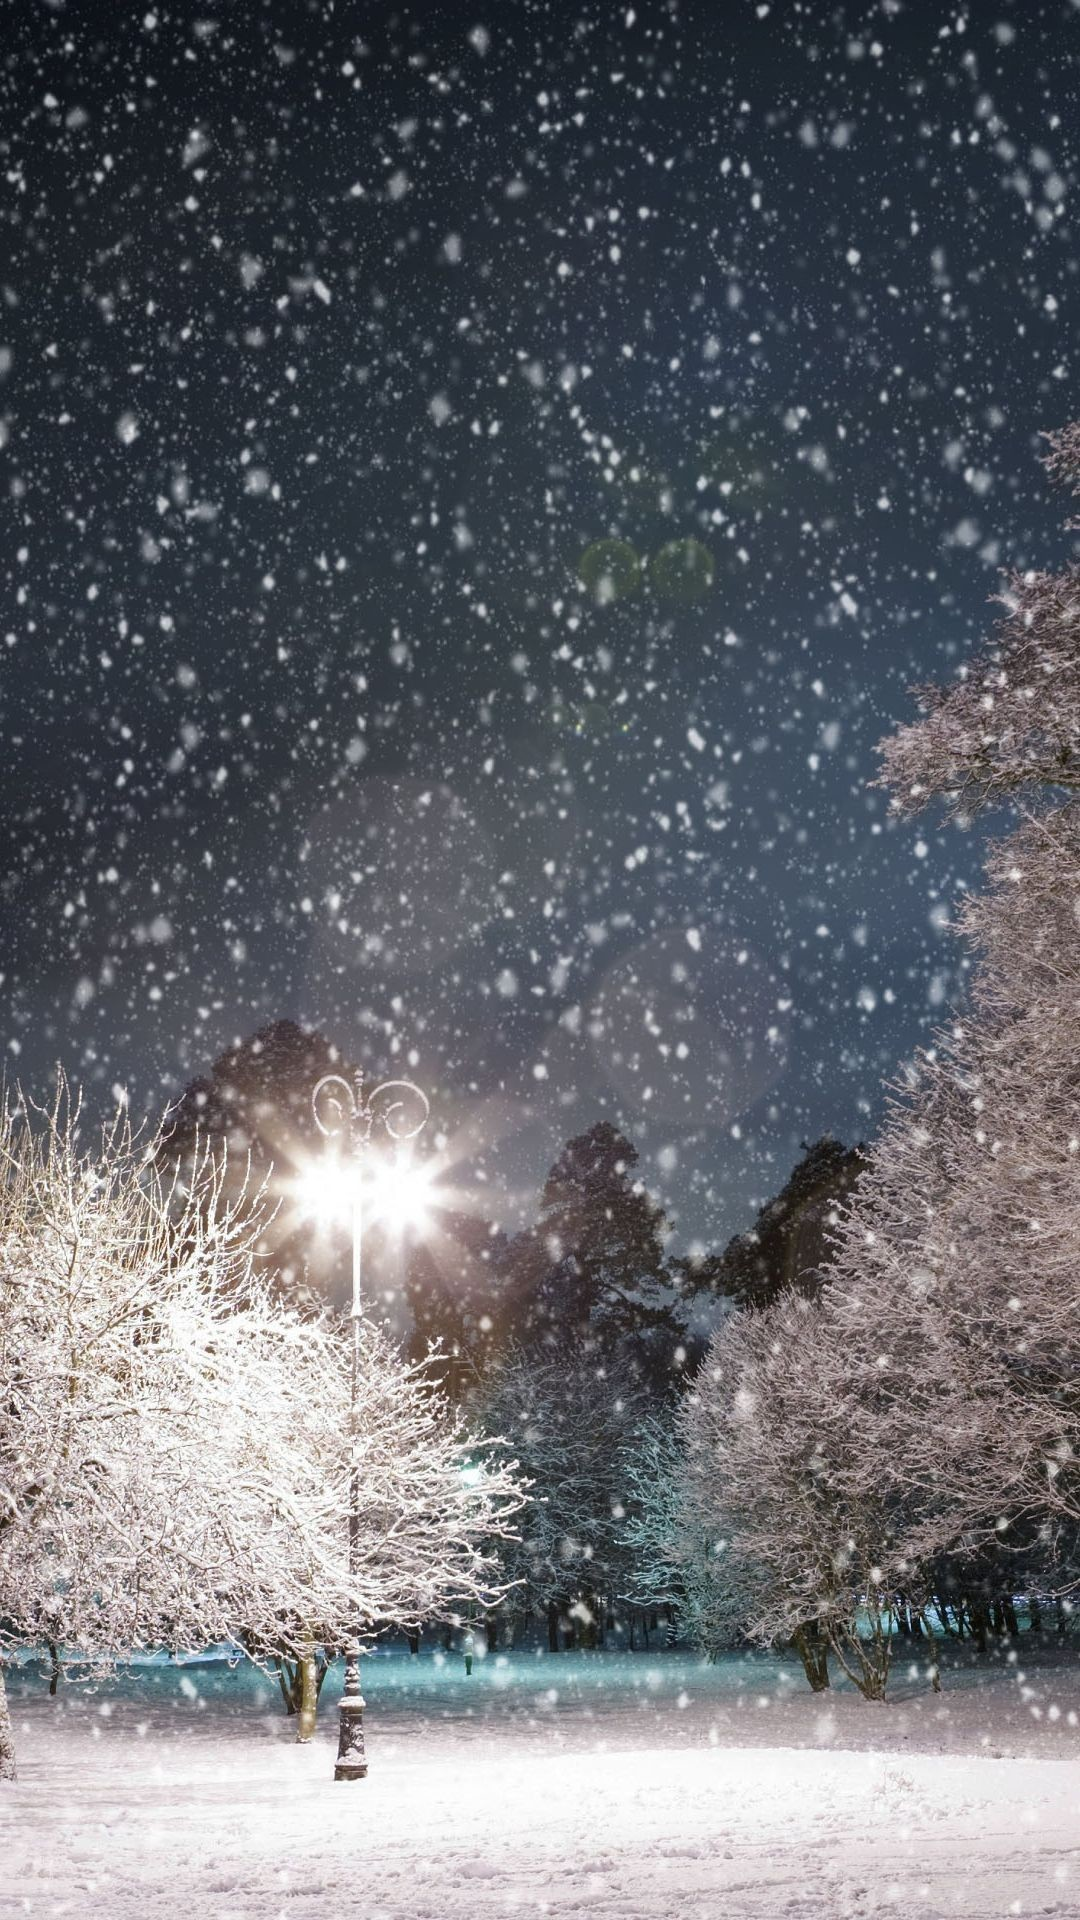 Winter Wallpaper For Iphone 6 Plus – HD Wallpapers Backgrounds of .